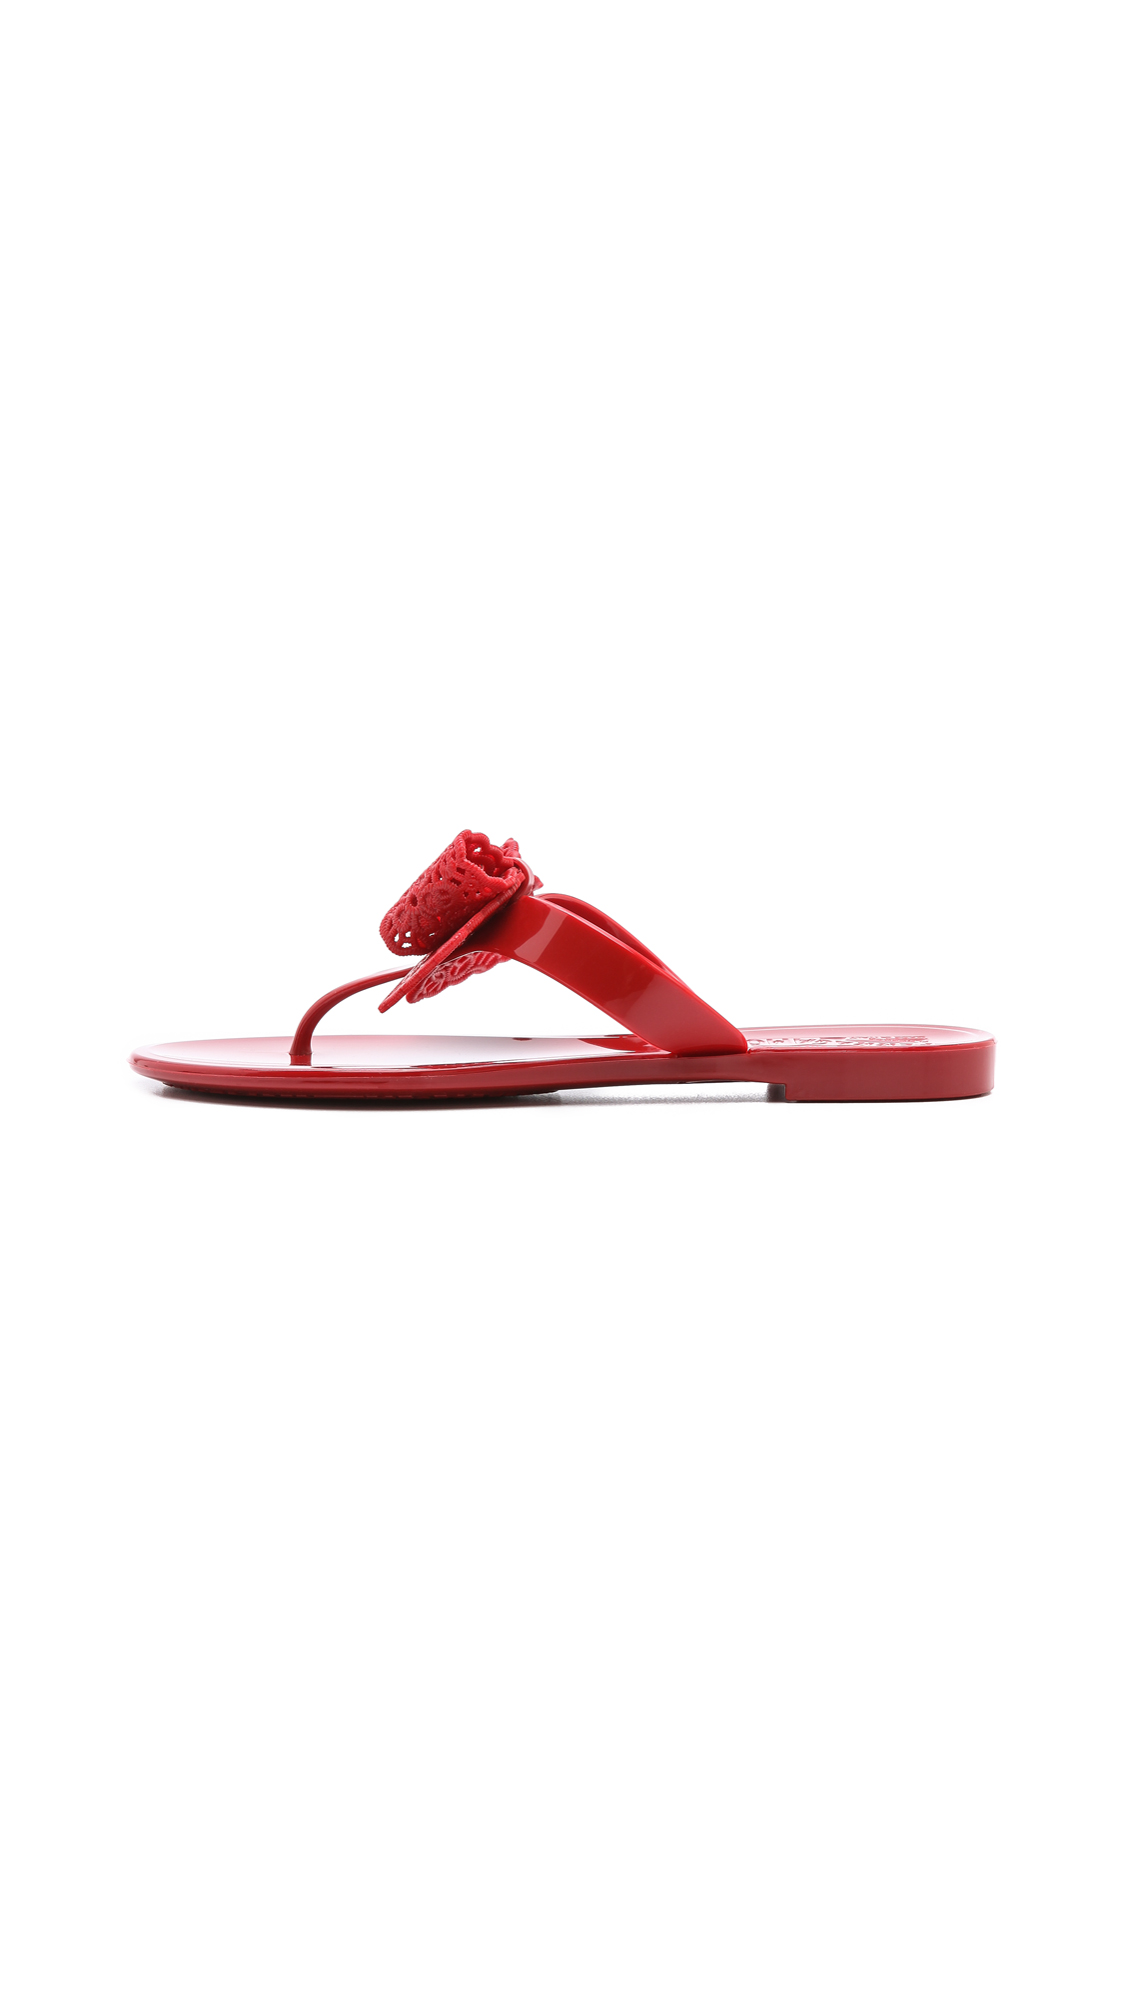 95fde7cf3be5 Salvatore Ferragamo Pandy Jelly Thong Sandals